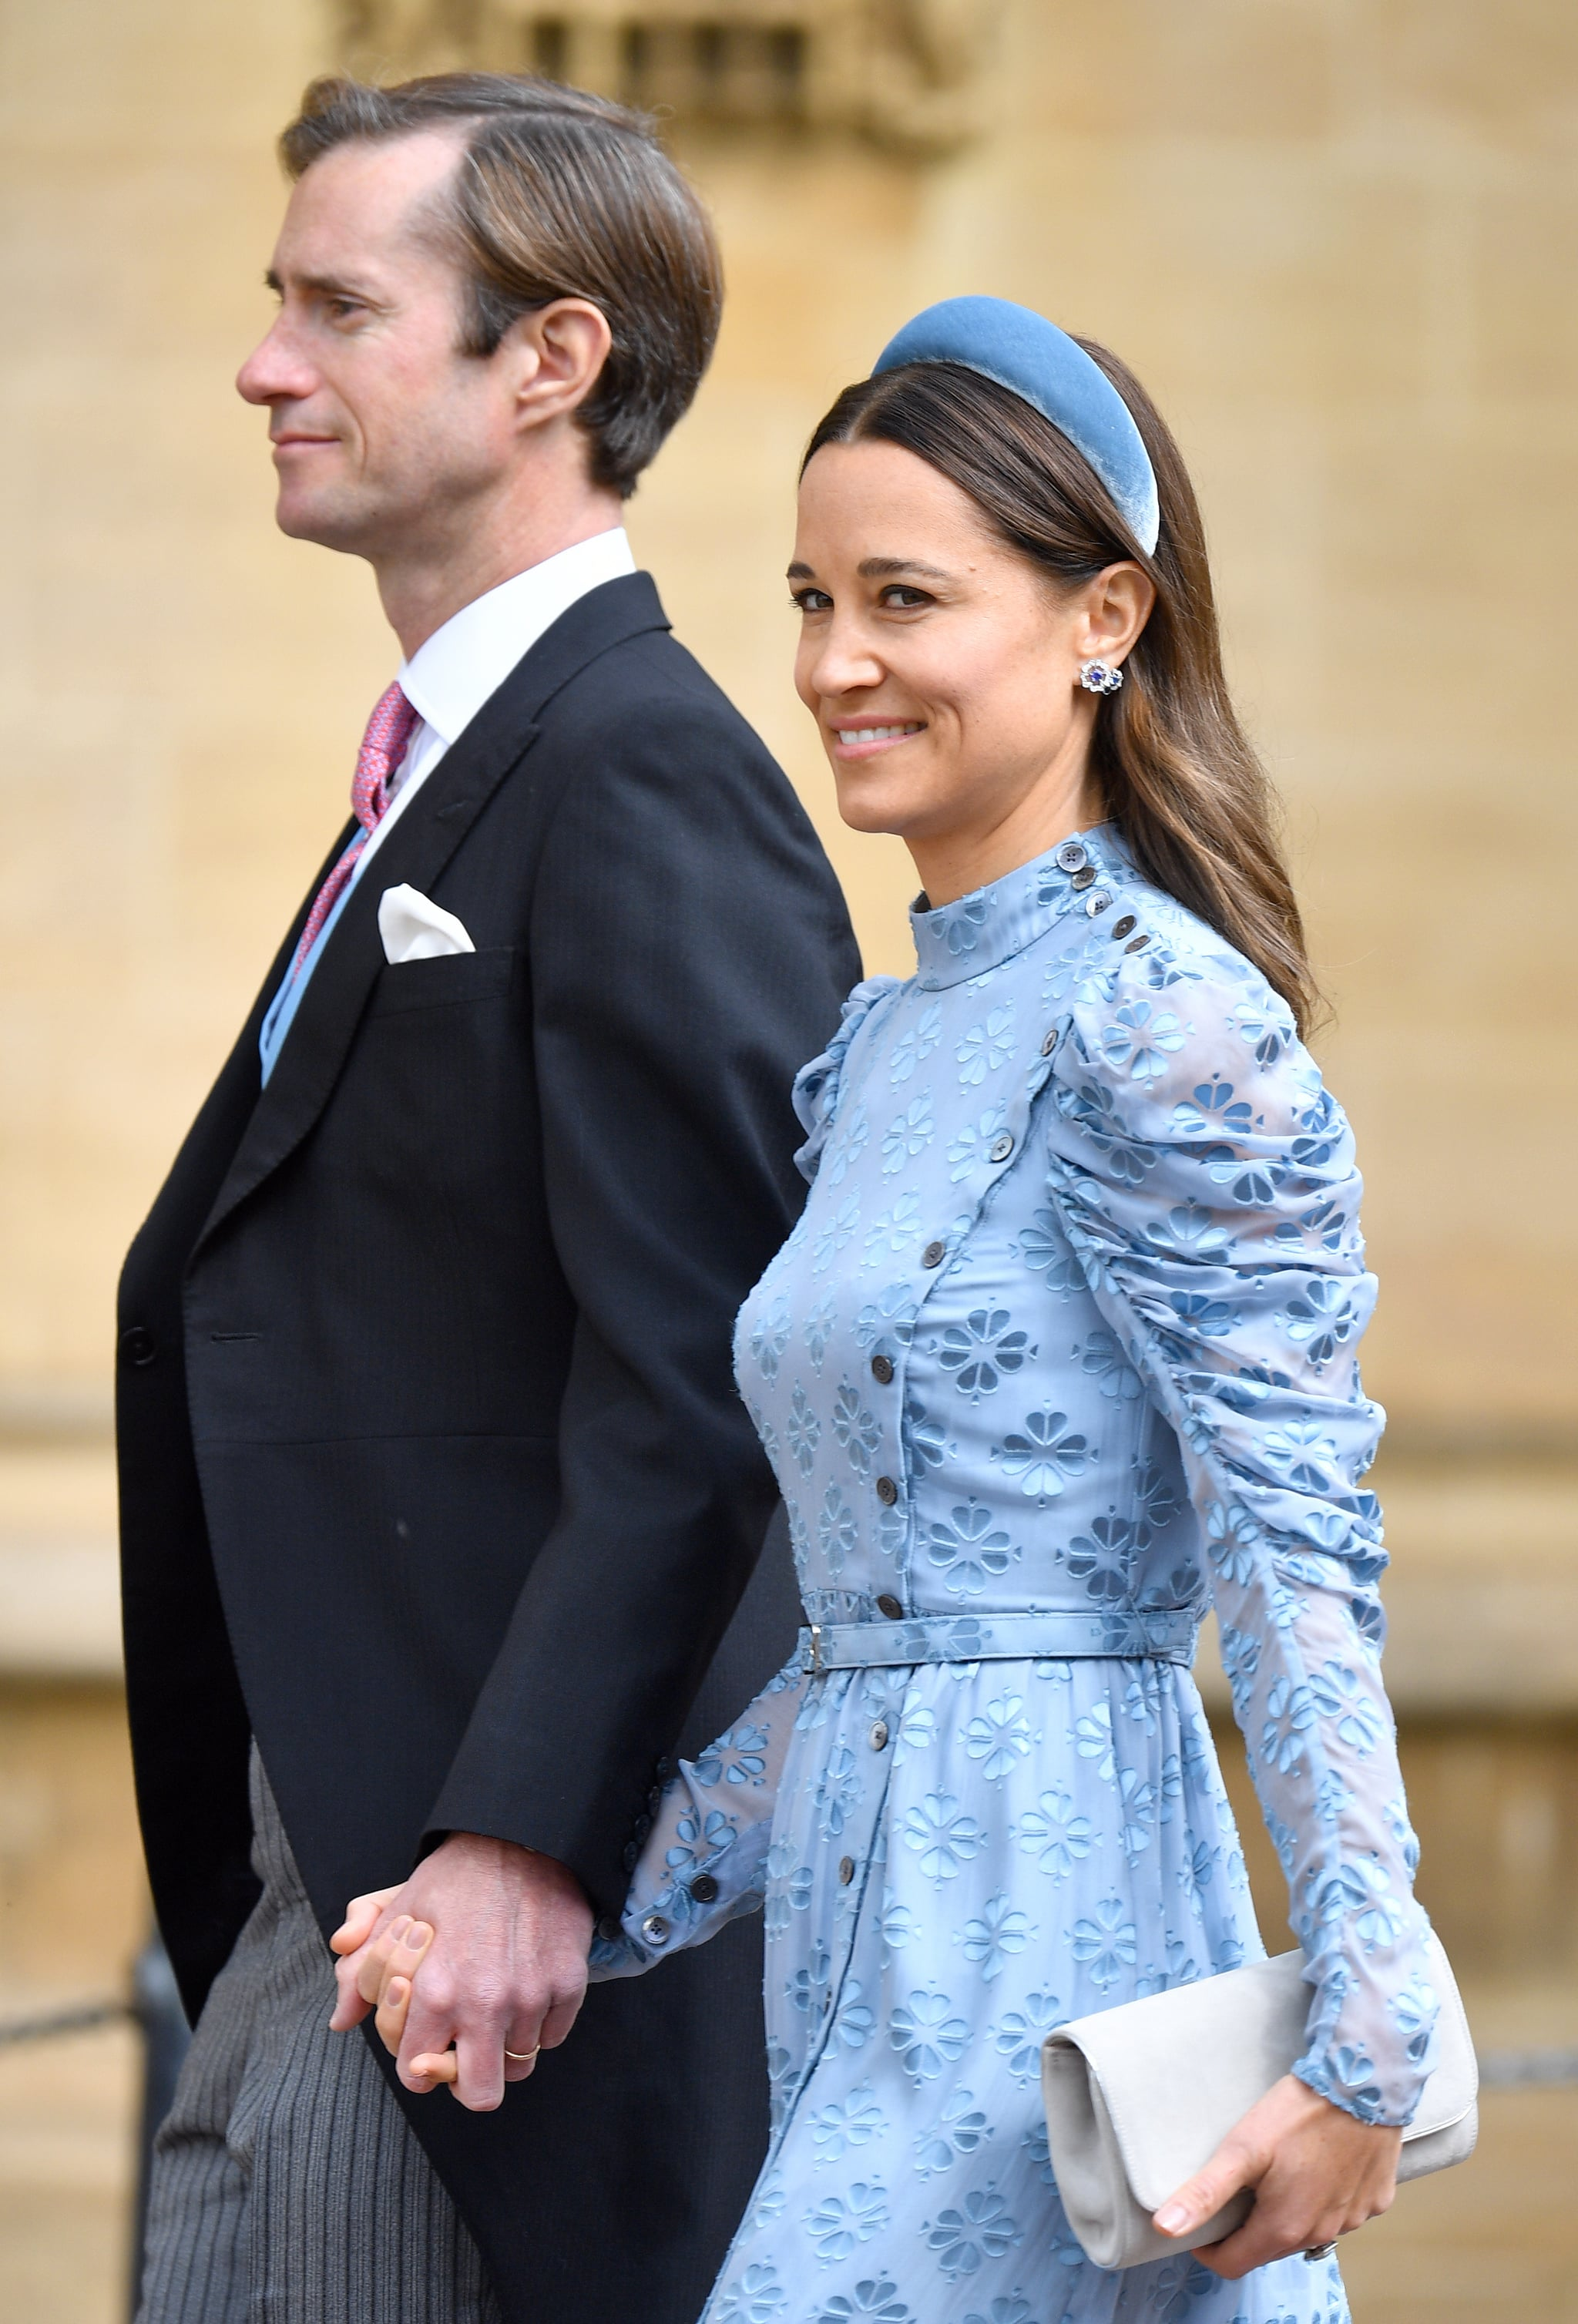 WINDSOR, UNITED KINGDOM - MAY 18: (EMBARGOED FOR PUBLICATION IN UK NEWSPAPERS UNTIL 24 HOURS AFTER CREATE DATE AND TIME) James Matthews and Pippa Middleton attend the wedding of Lady Gabriella Windsor and Thomas Kingston at St George's Chapel on May 18, 2019 in Windsor, England. (Photo by Pool/Max Mumby/Getty Images)